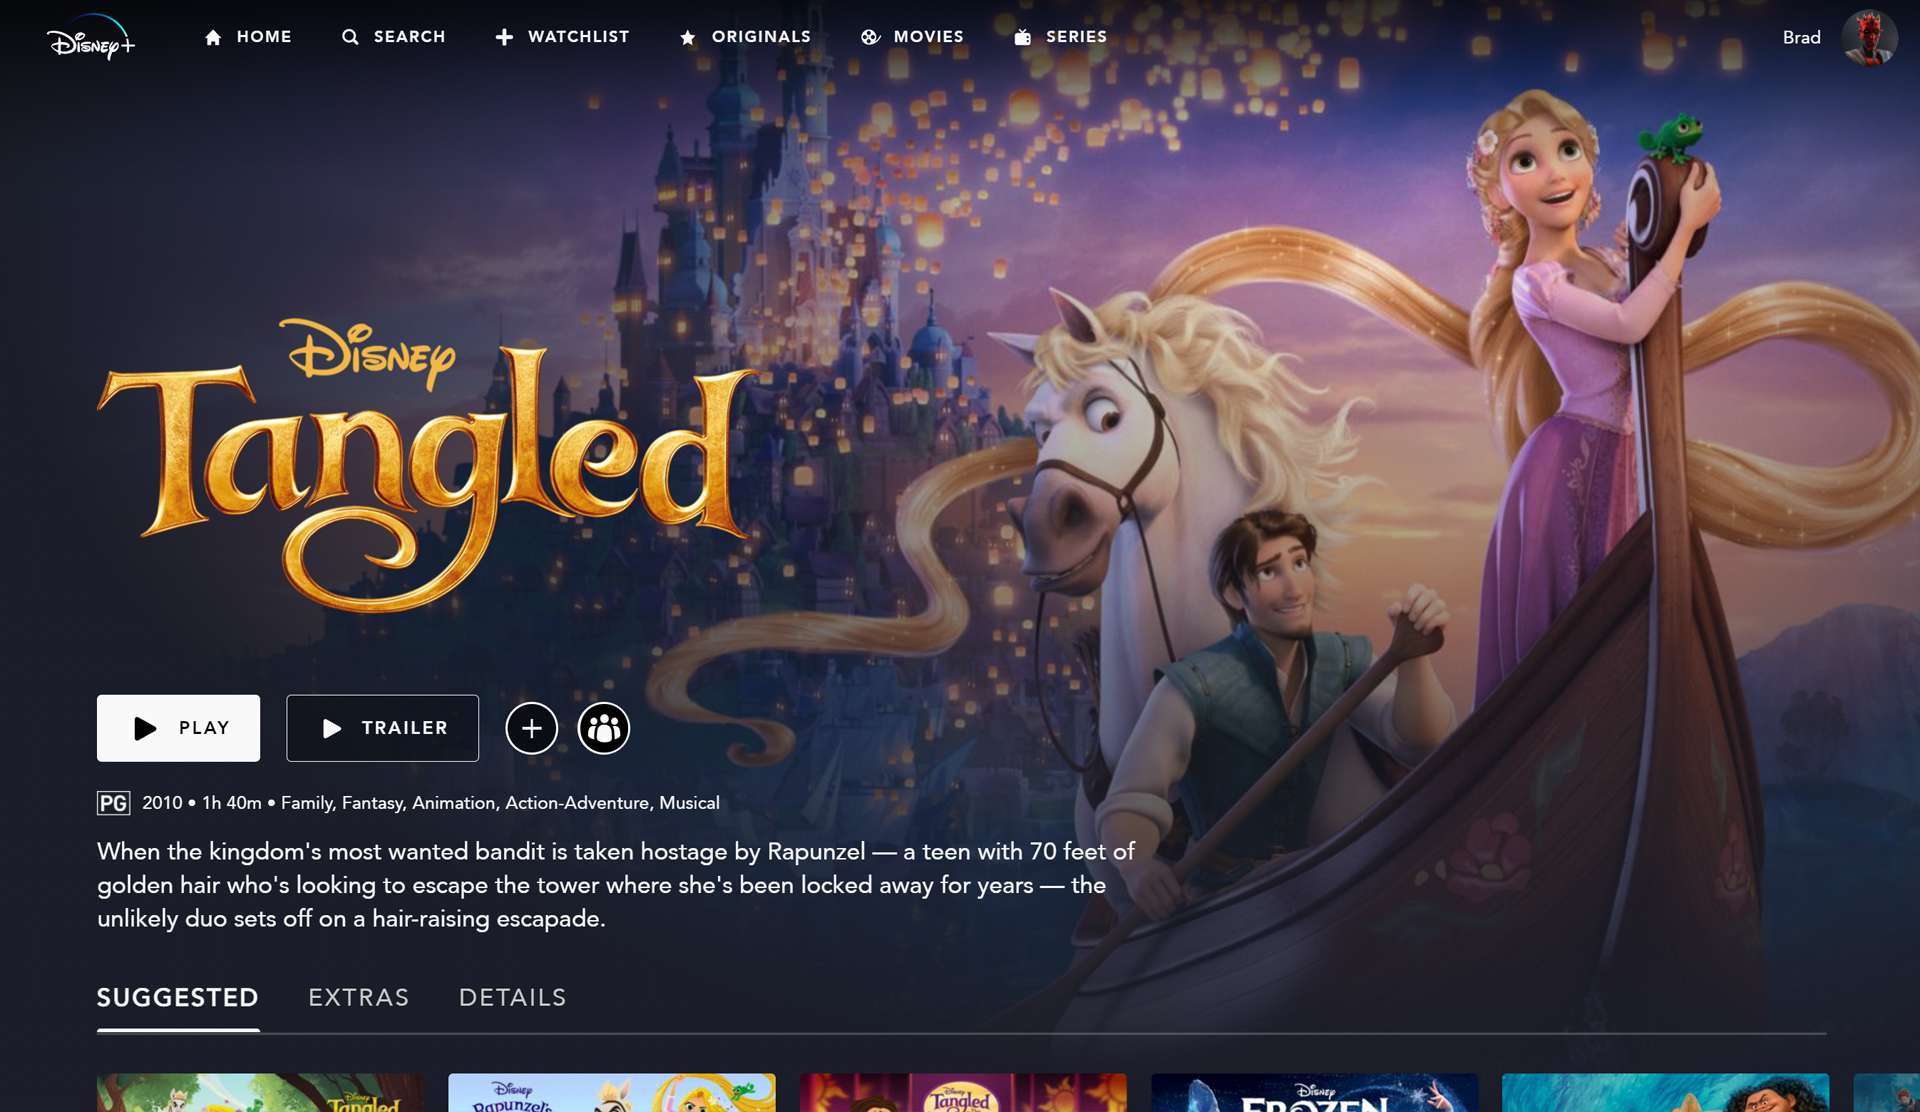 Disney's Tangled and other kids movies on Disney Plus.